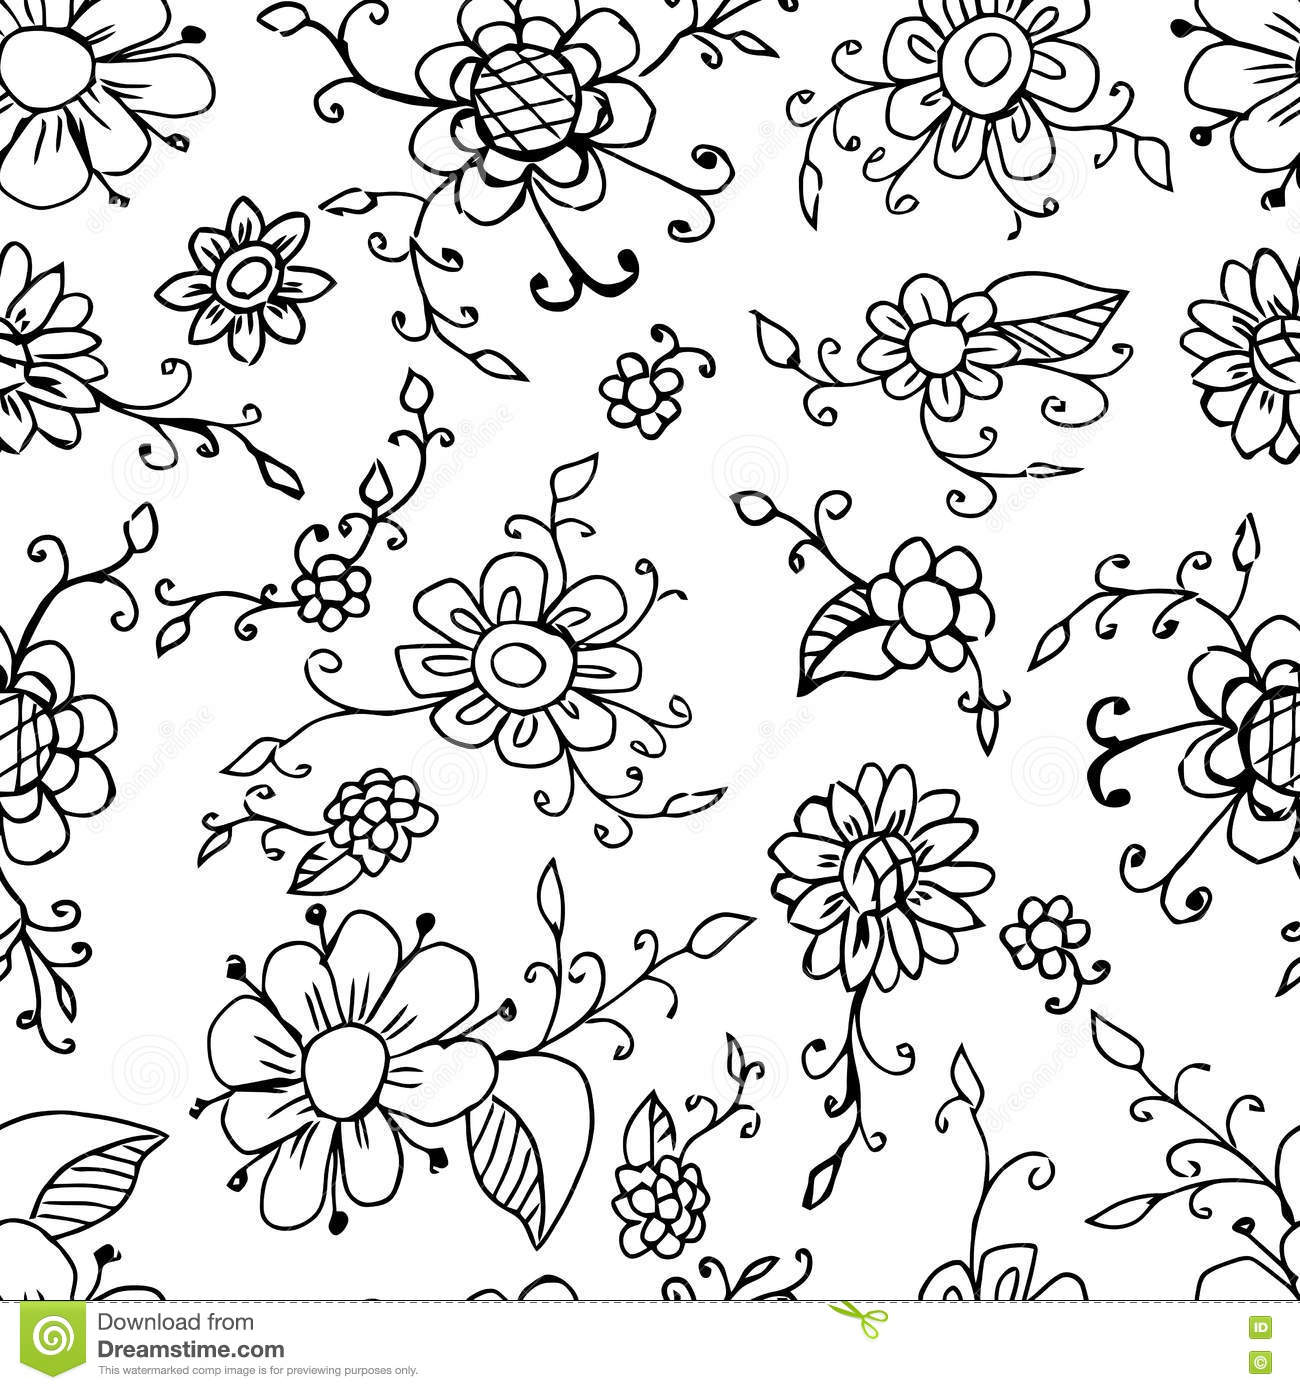 Vintage Seamless Black And White Floral Pattern. Vector